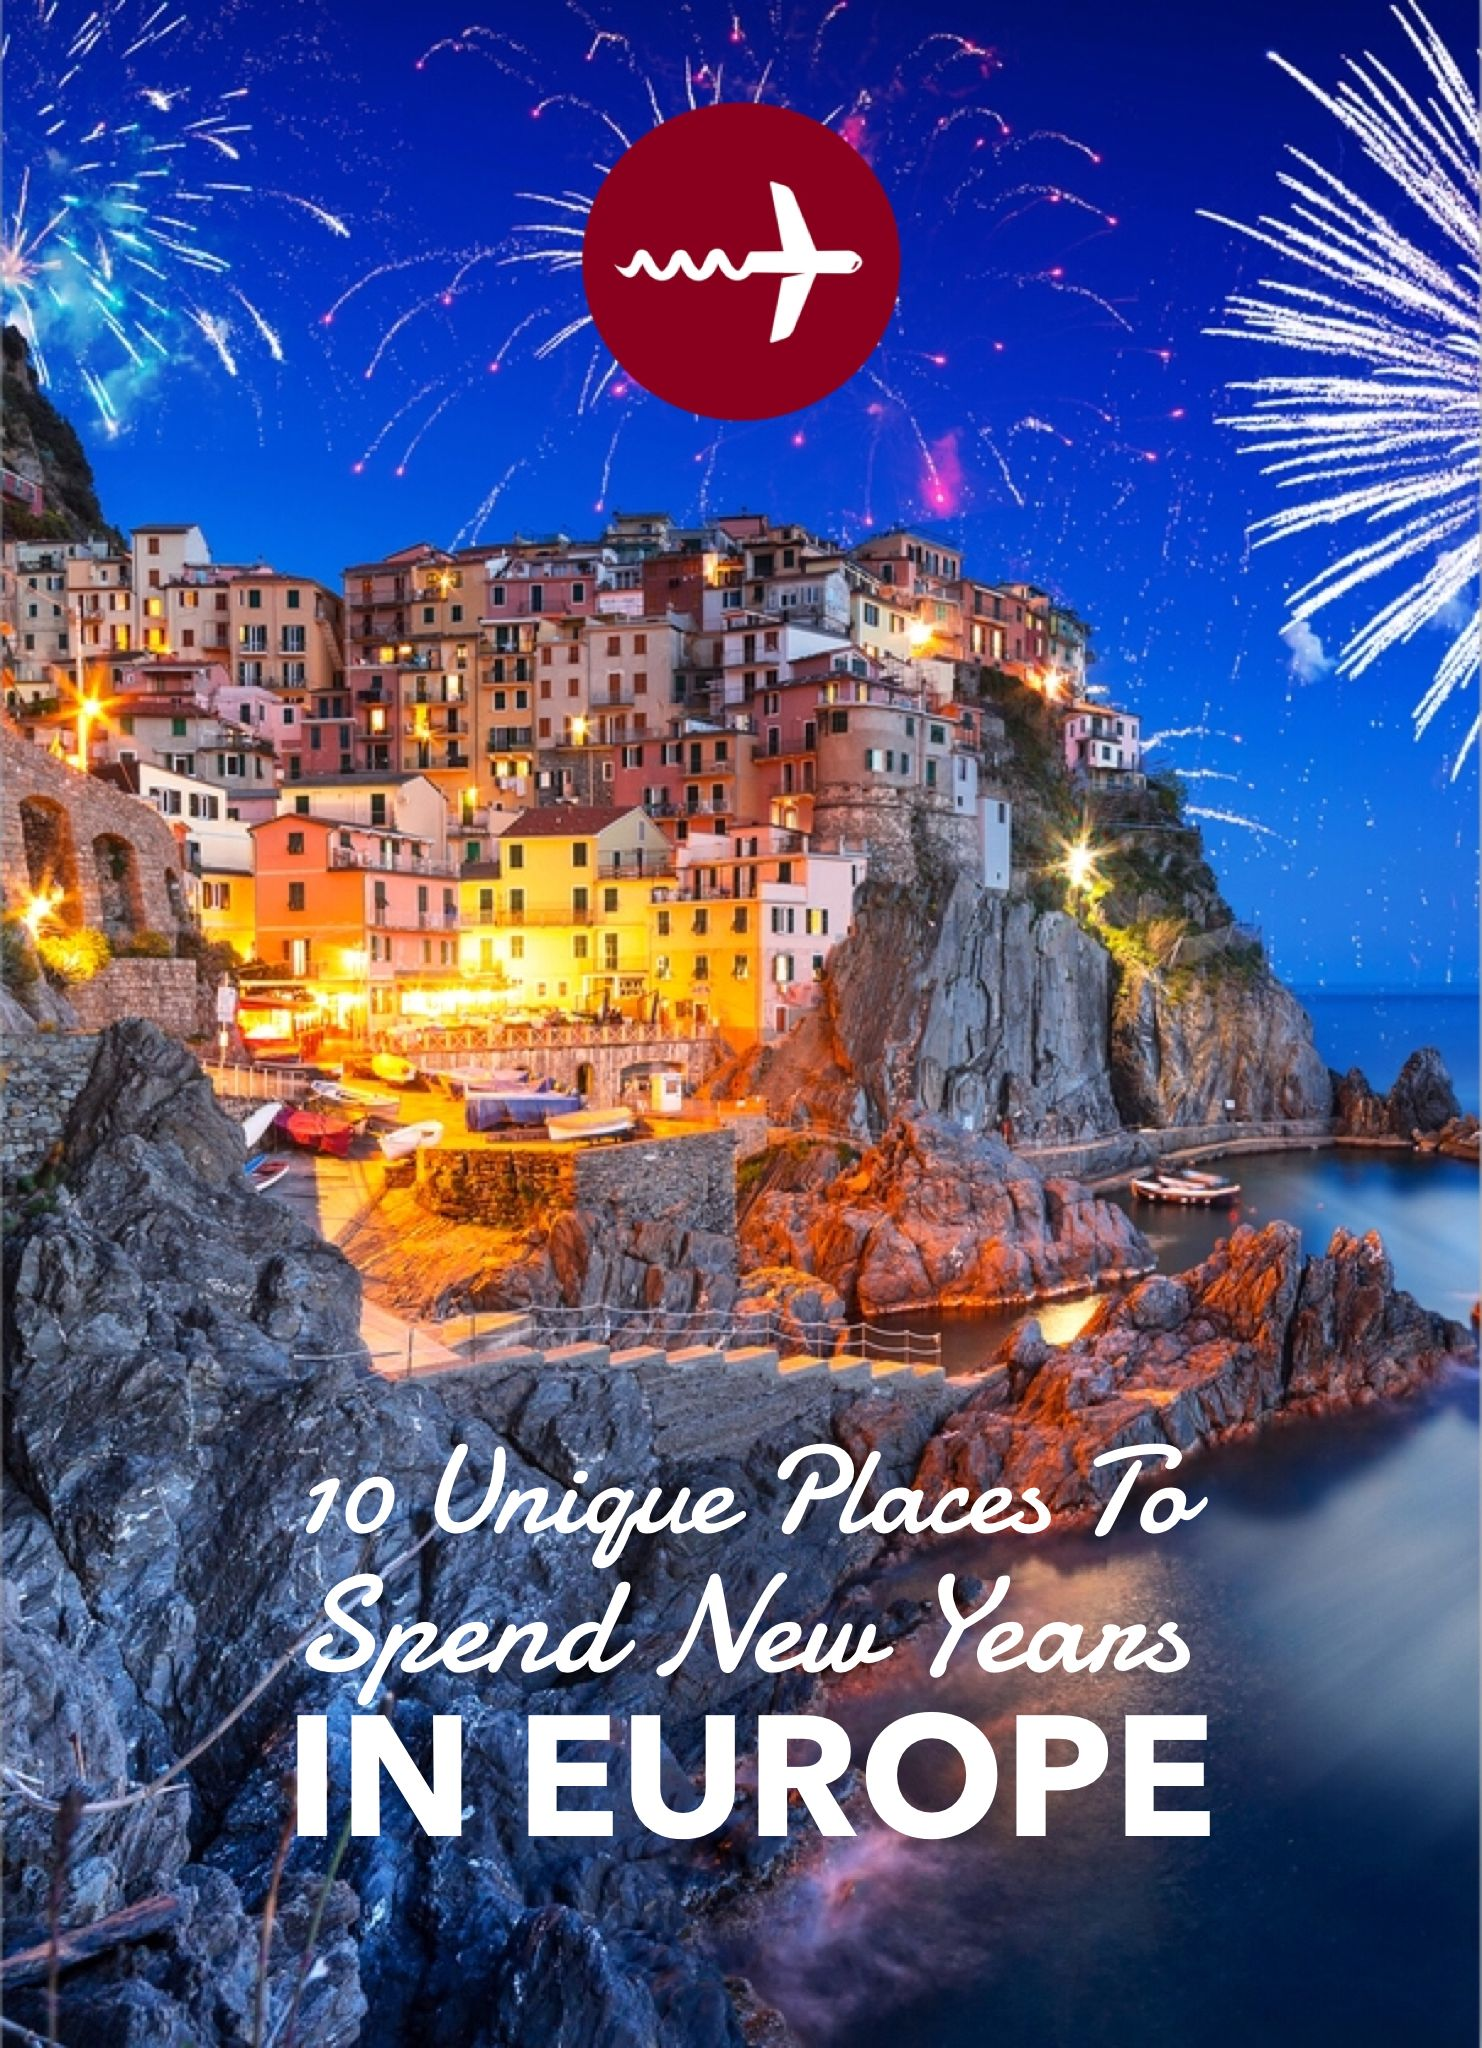 10 Unique Places To Spend New Years In Europe Winetraveler Holiday Travel Destinations Europe Travel Destinations Europe Travel